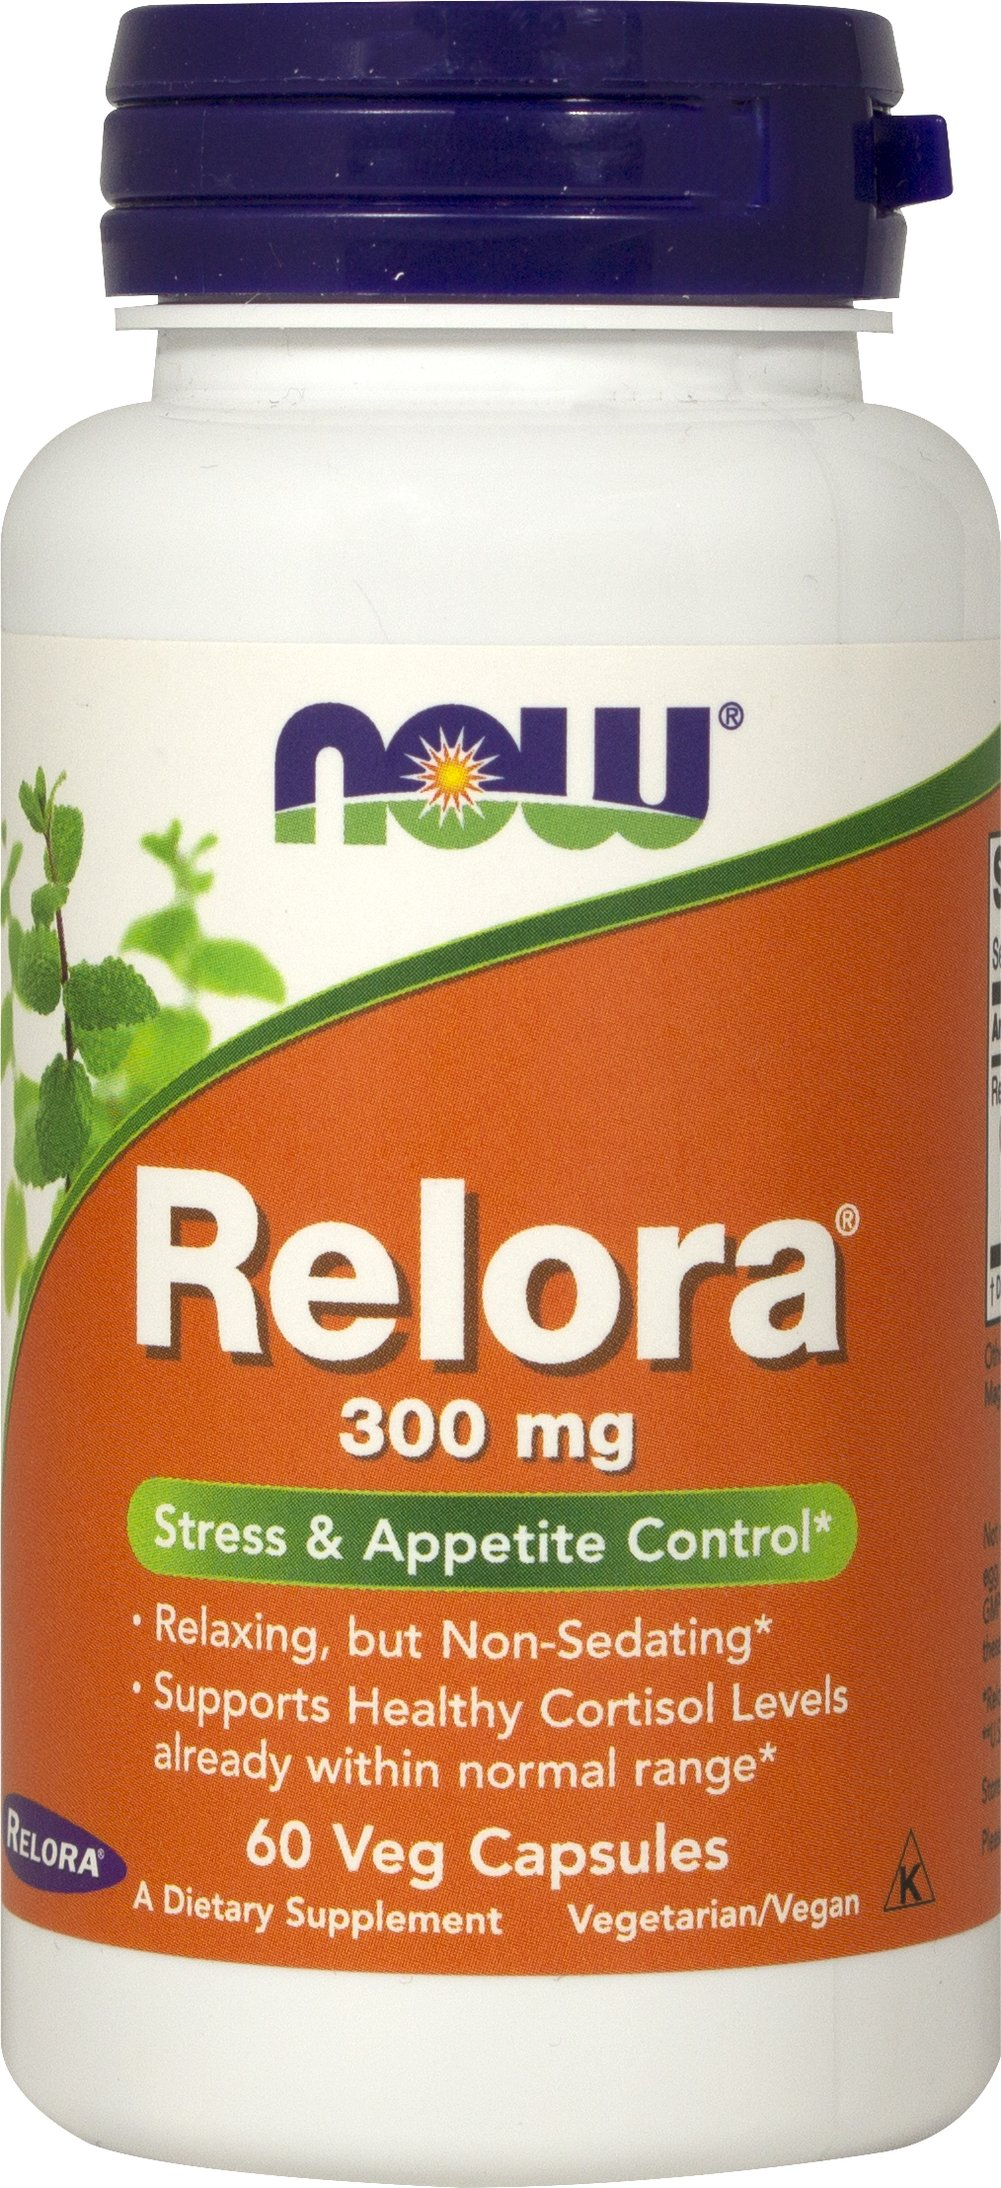 Relora <p><strong> From the Manufacturer's label:</strong></p><p>Vegetarian Formula</p><p></p>NOW®Relora® is an all-natural proprietary blend of plant extracts from Magnoli officinalis and Phellodendron amurense that is not habit-forming.**<p></p><p>Manufactured by NOW FOODS</p> 60 Capsules 300 mg $10.99